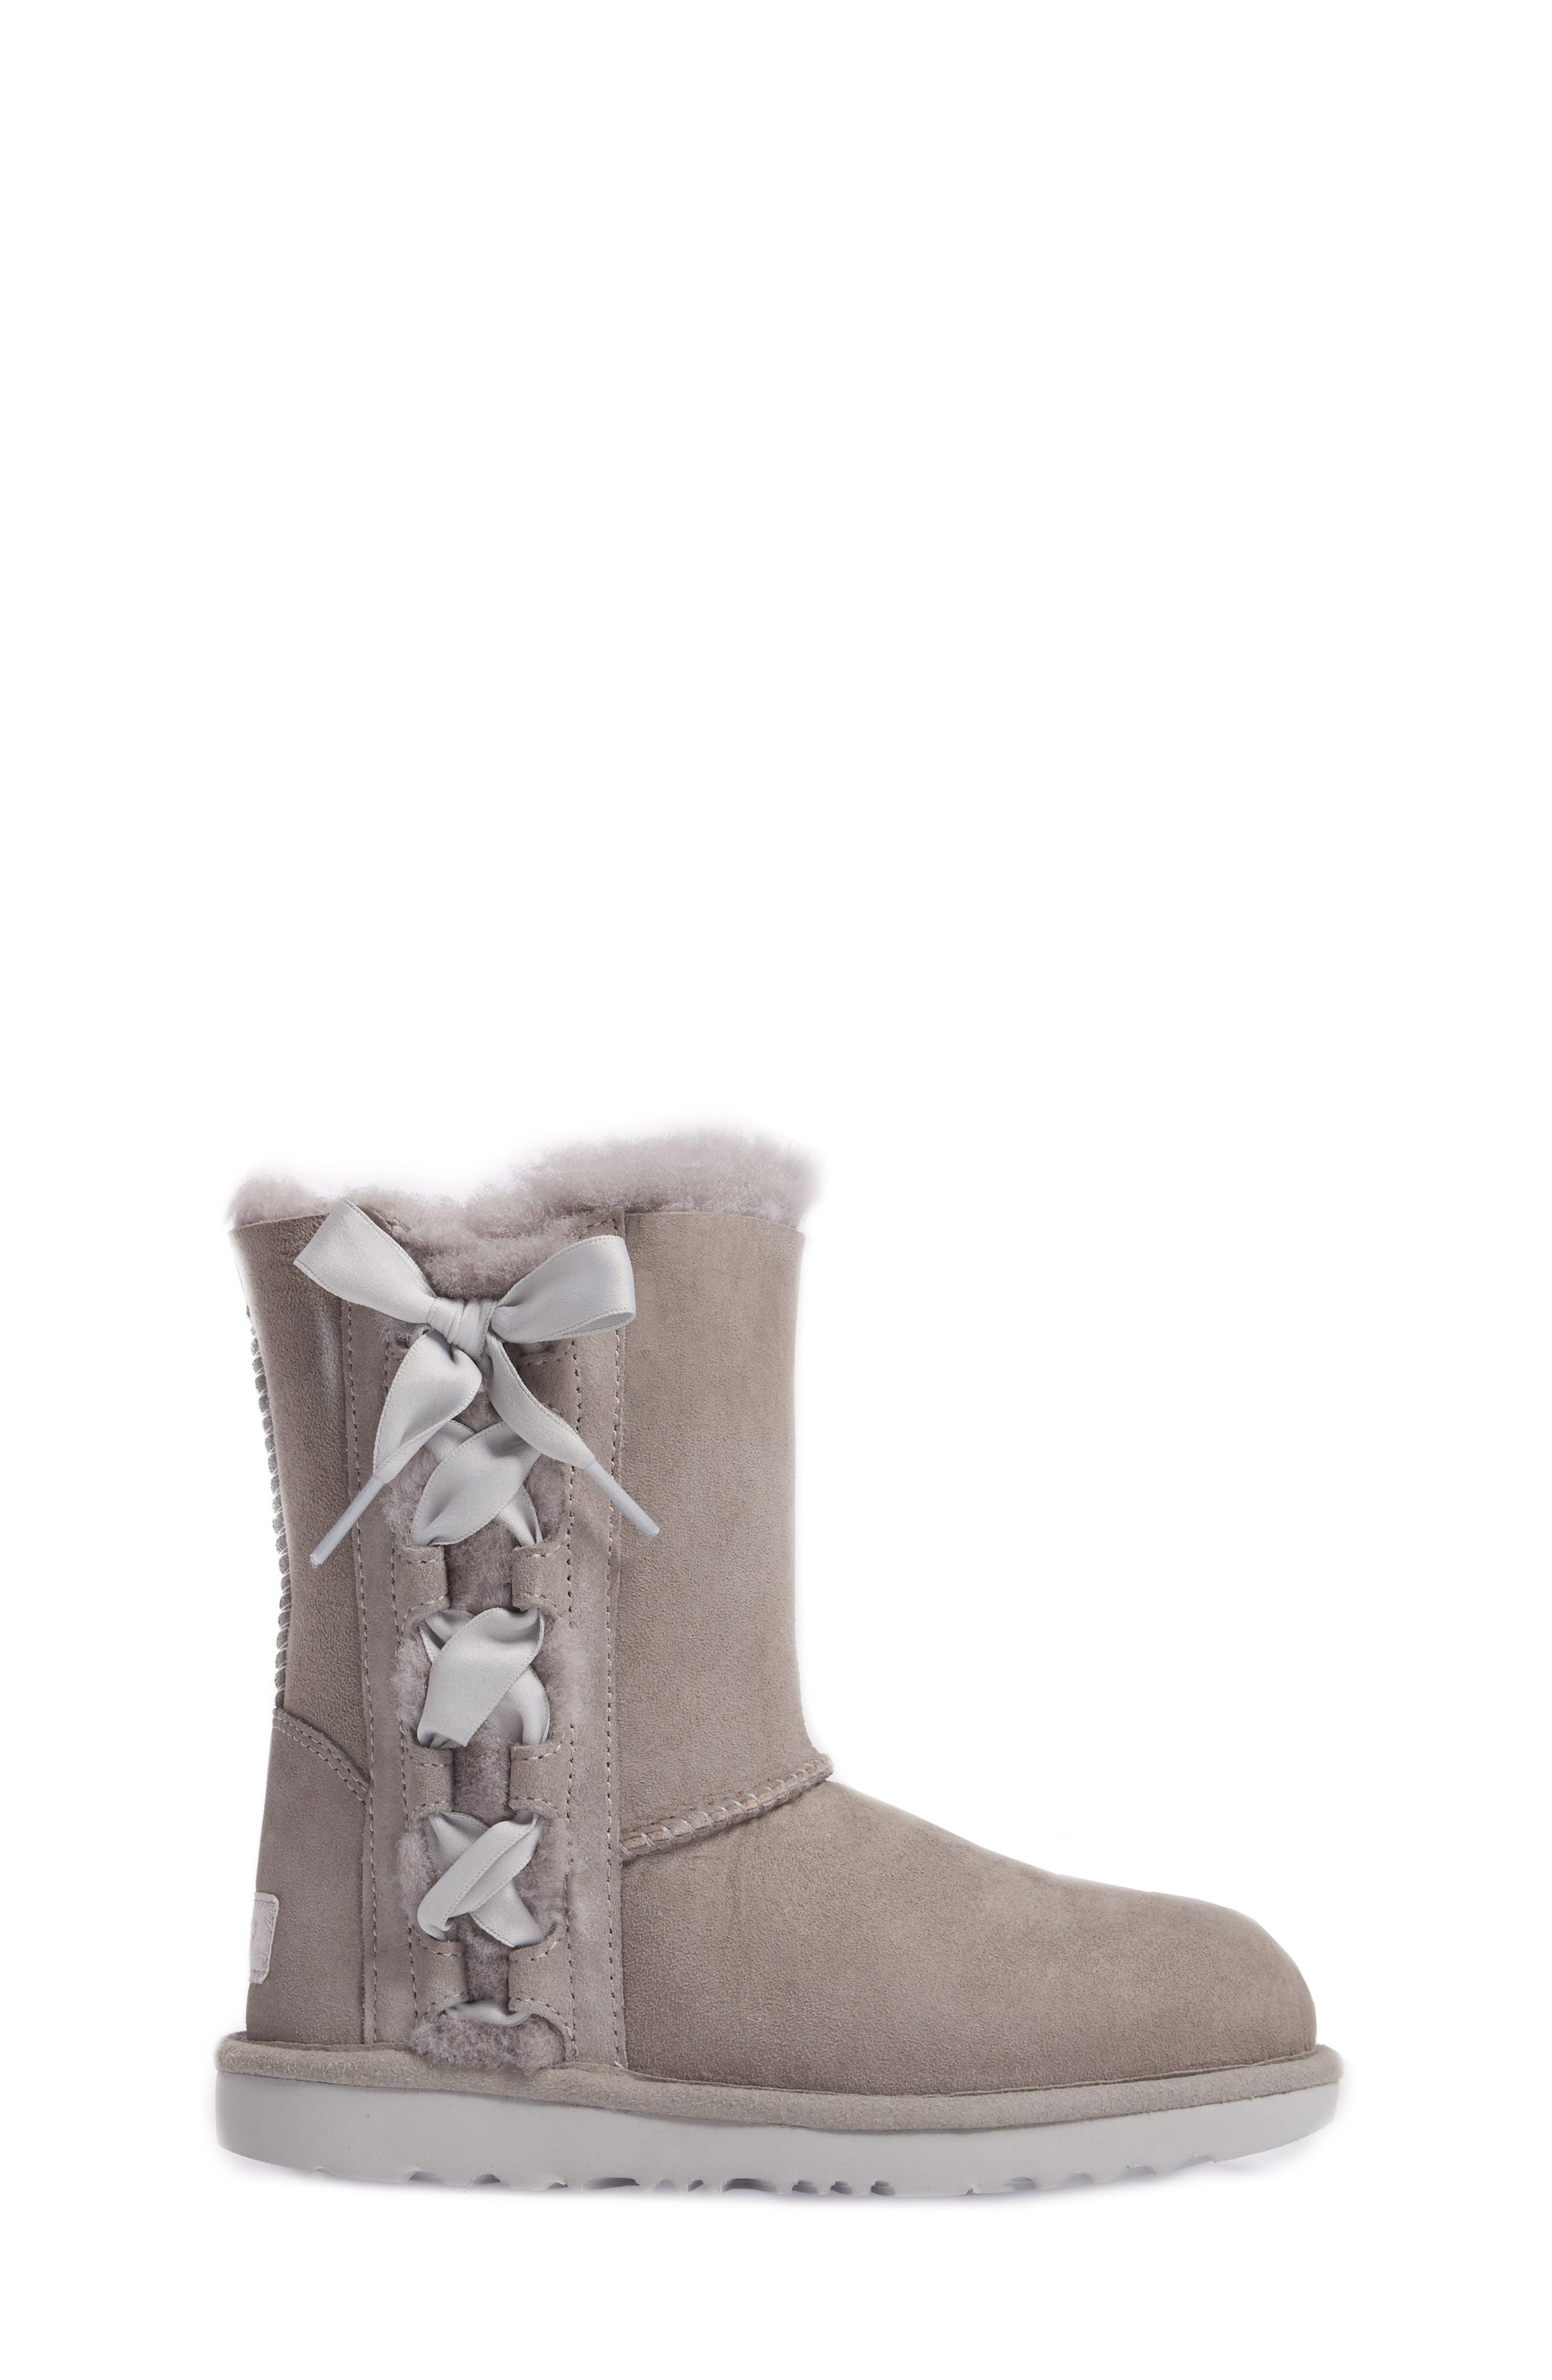 Alternate Image 3  - UGG® Pala Water-Resistant Genuine Shearling Boot (Walker, Toddler, Little Kid & Big Kid)